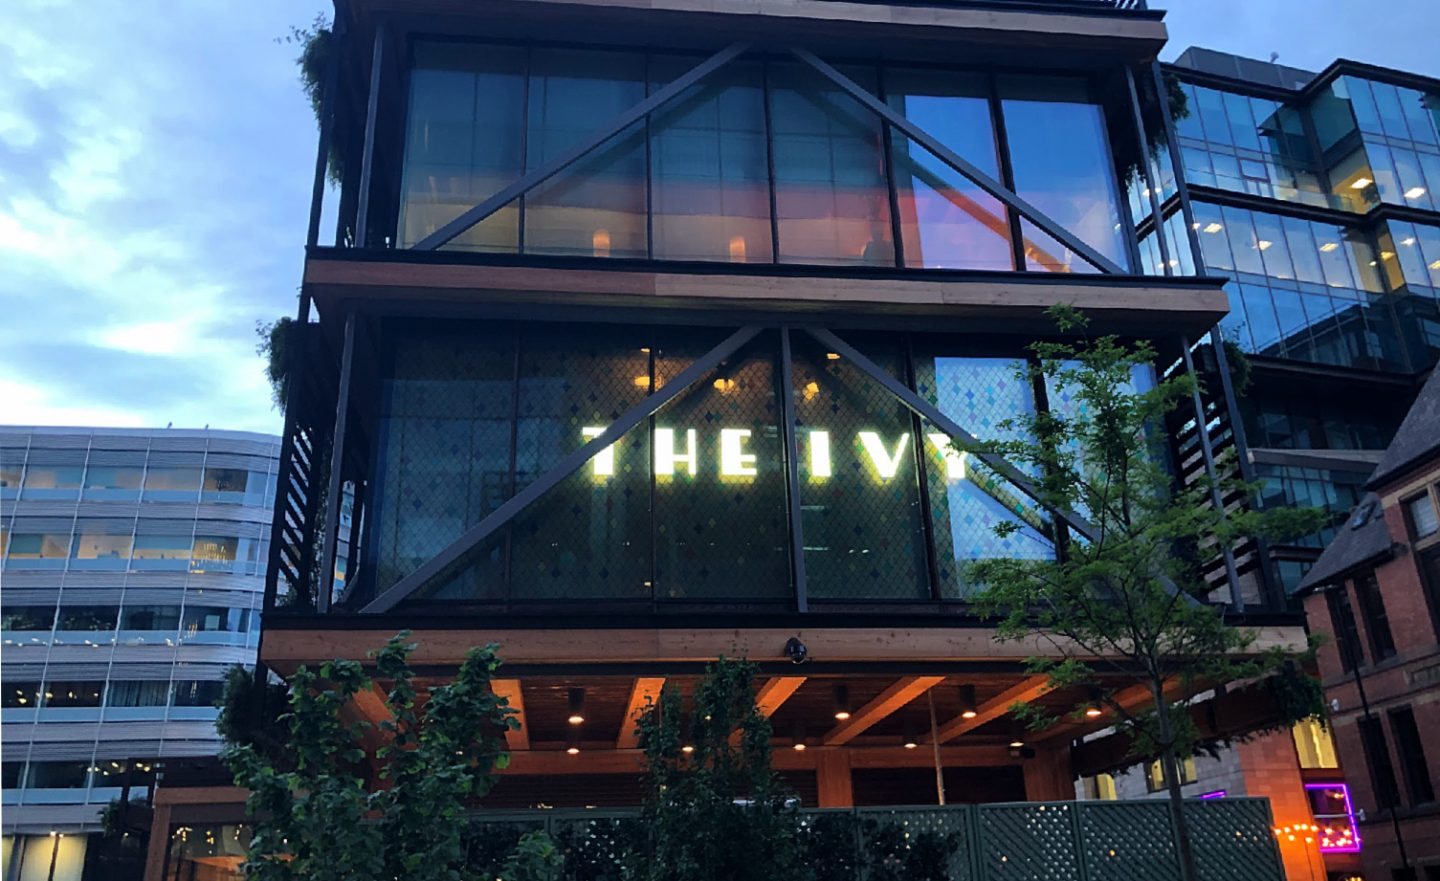 The ivy manchester